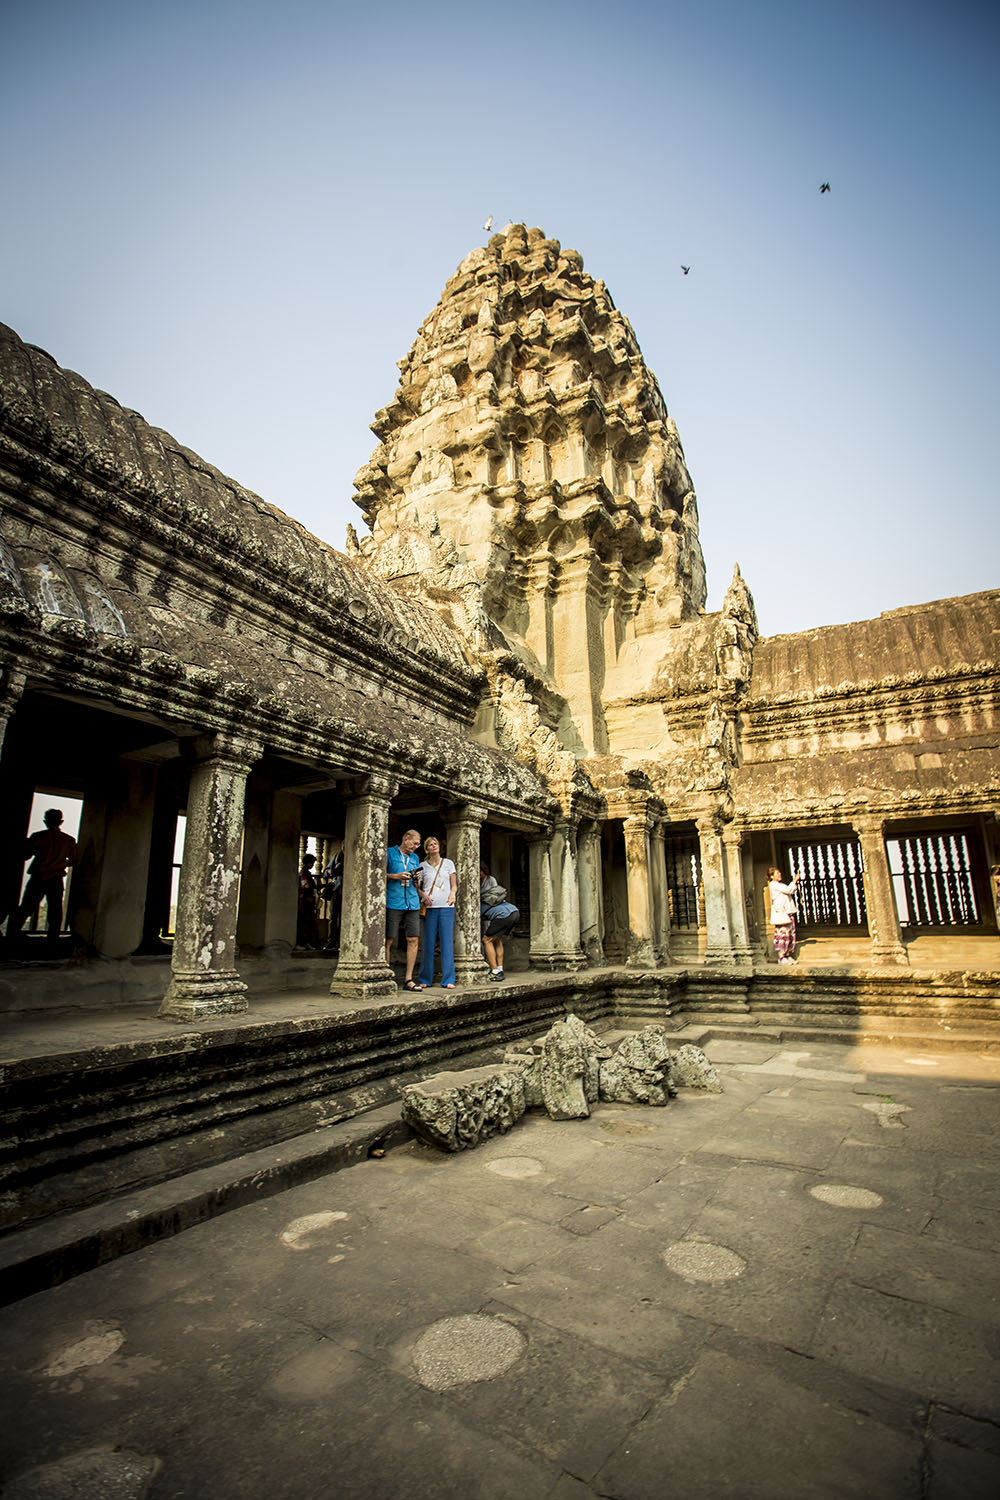 Indochina Day 9: Siem Reap, Angkor Wat